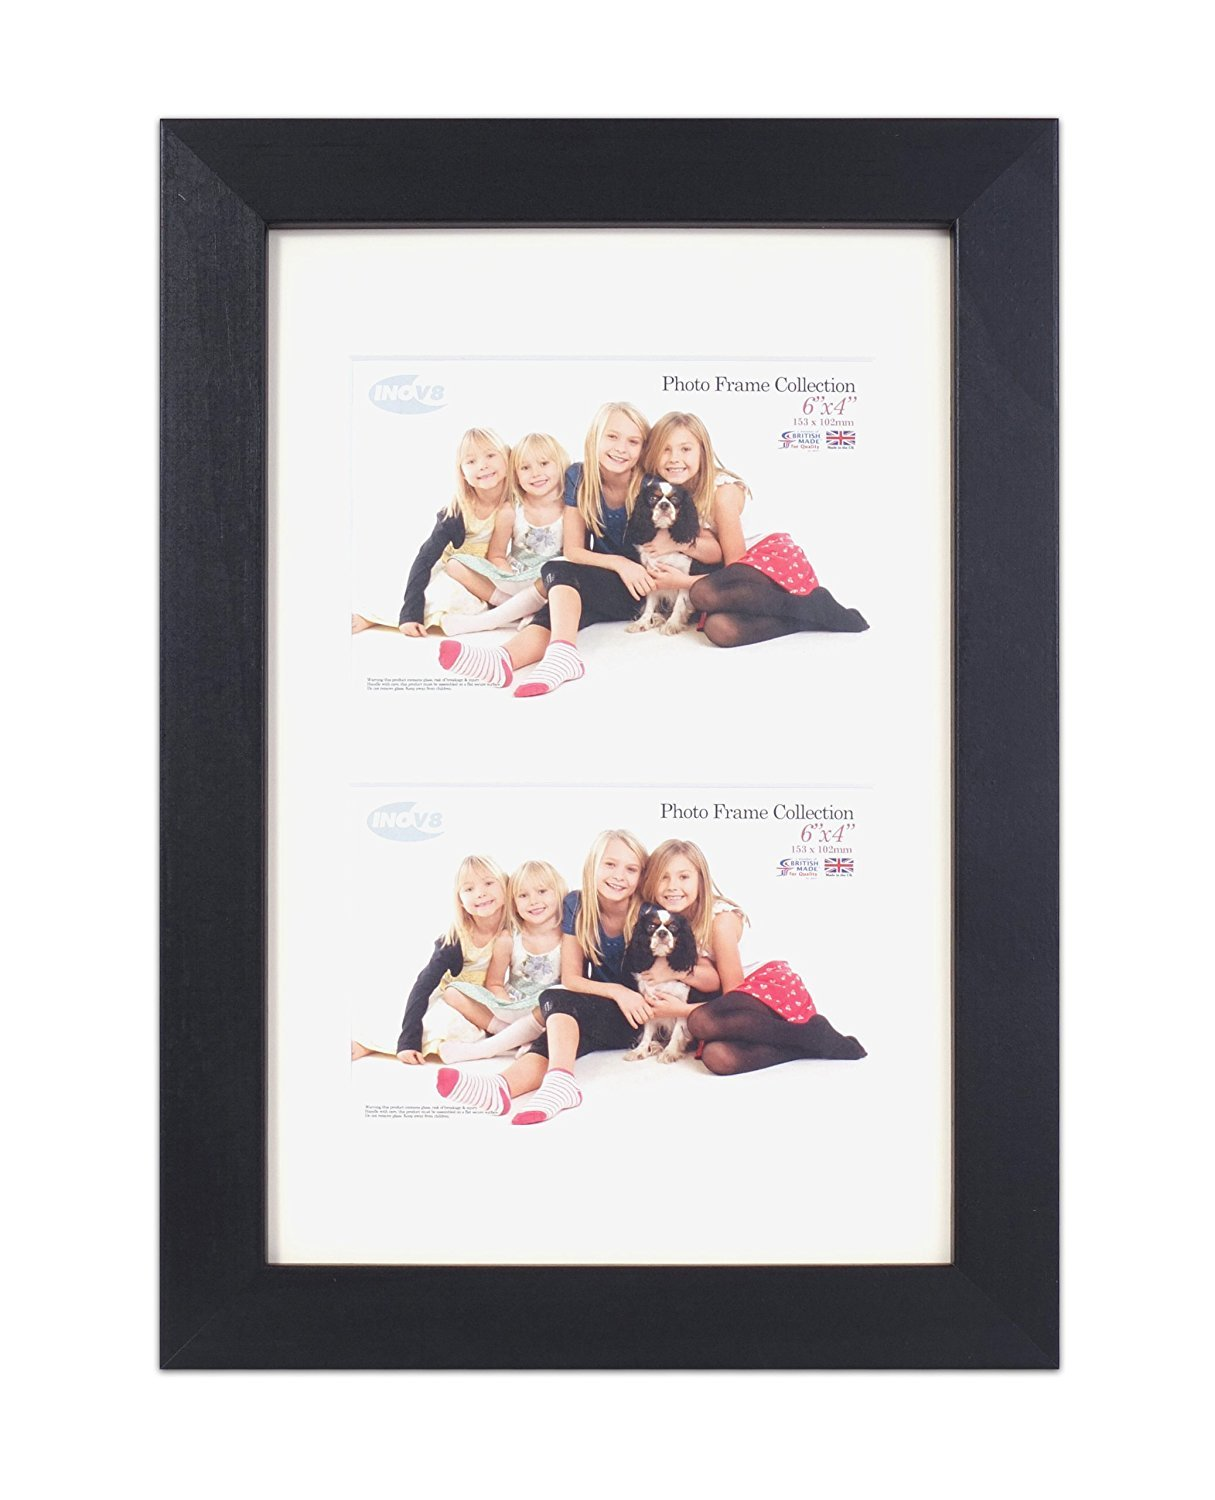 Inov8 British Made Real Wood Picture/Photo Frame, 12x8 Dual Aperture ...